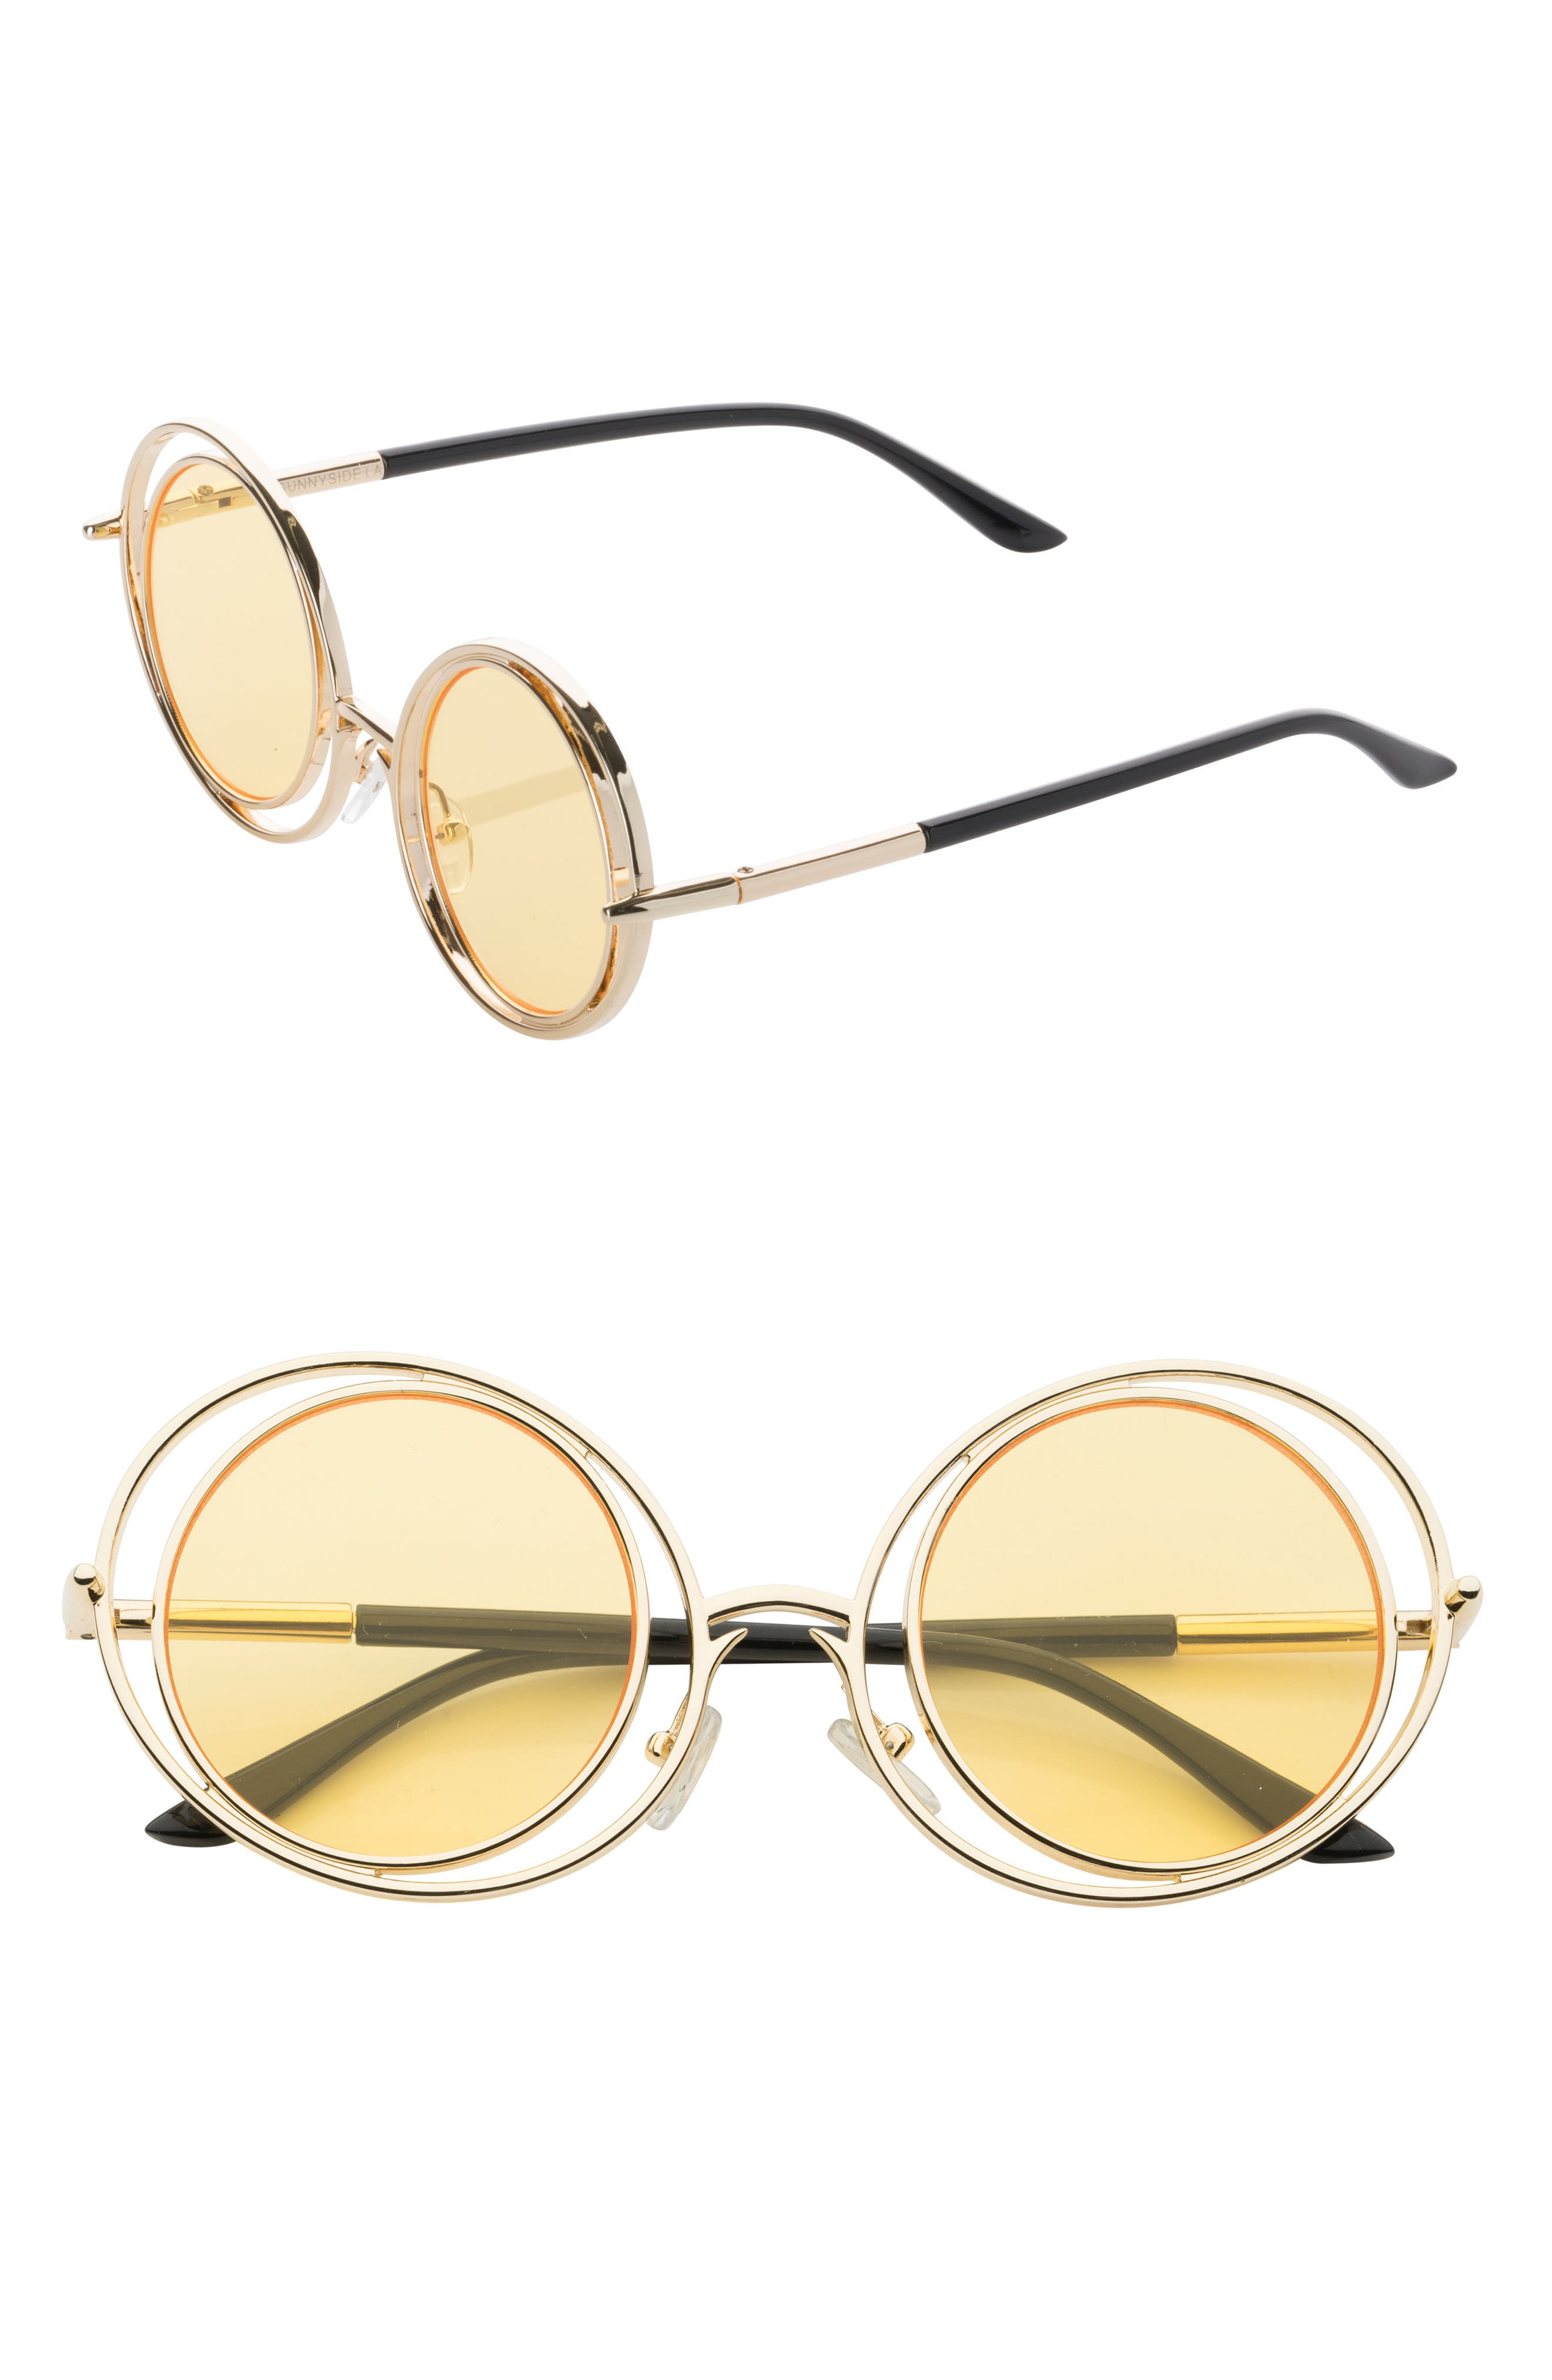 55mm Round Sunglasses,                             Main thumbnail 1, color,                             Gold/ Yellow